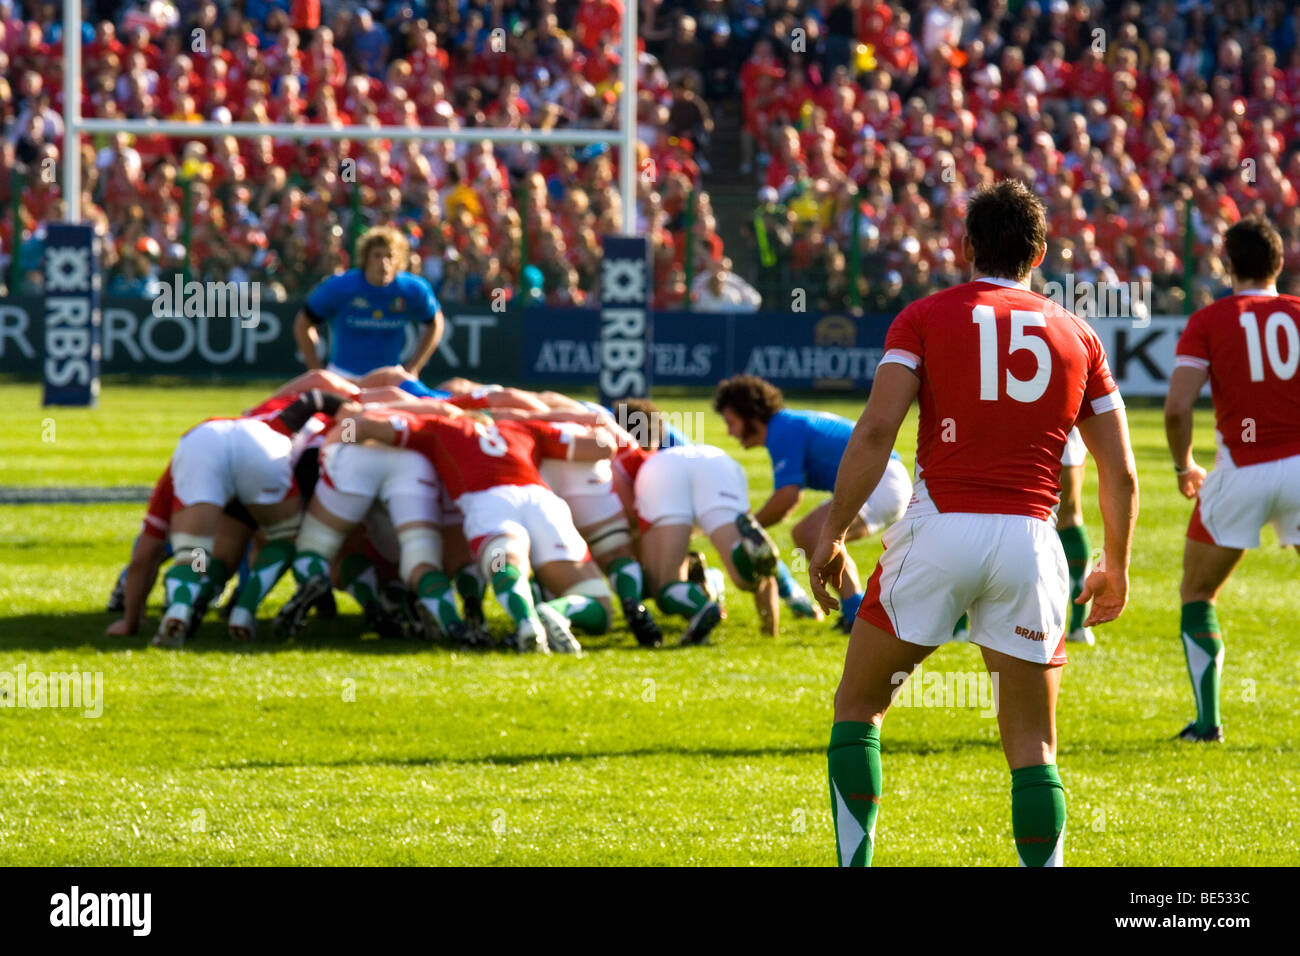 Rugby - six nations Italia contre le Pays de Galle Photo Stock